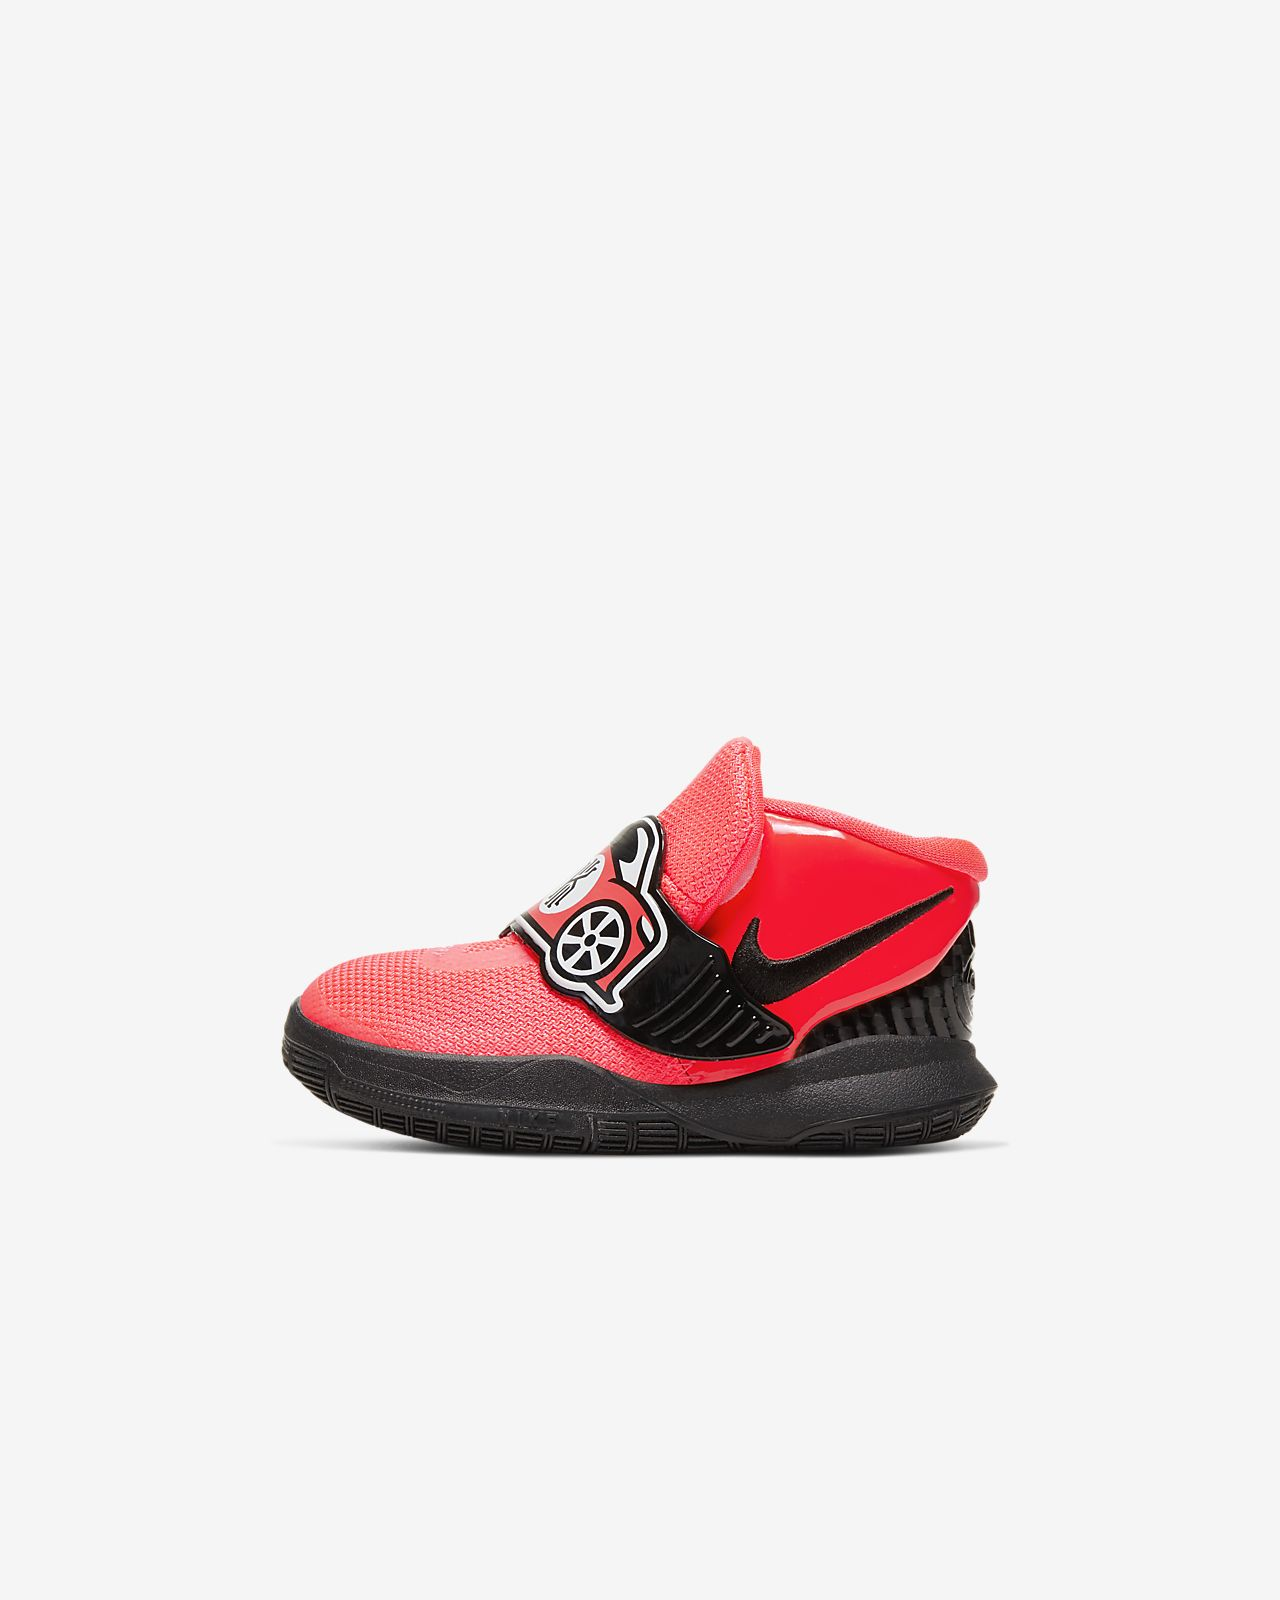 Kyrie 6 Super Vroom Baby and Toddler Shoe